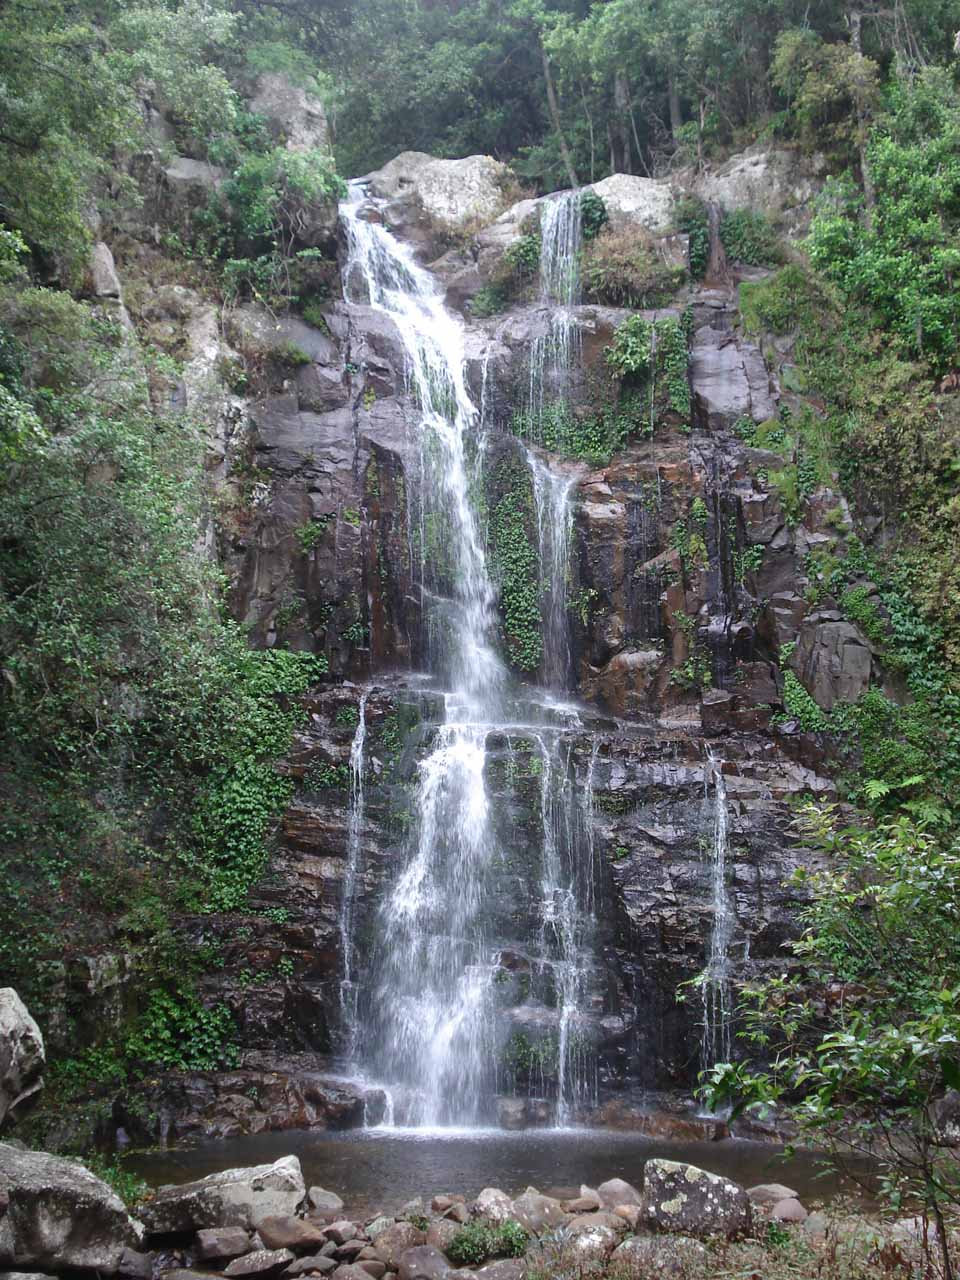 Closer look at the Upper Minnamurra Falls